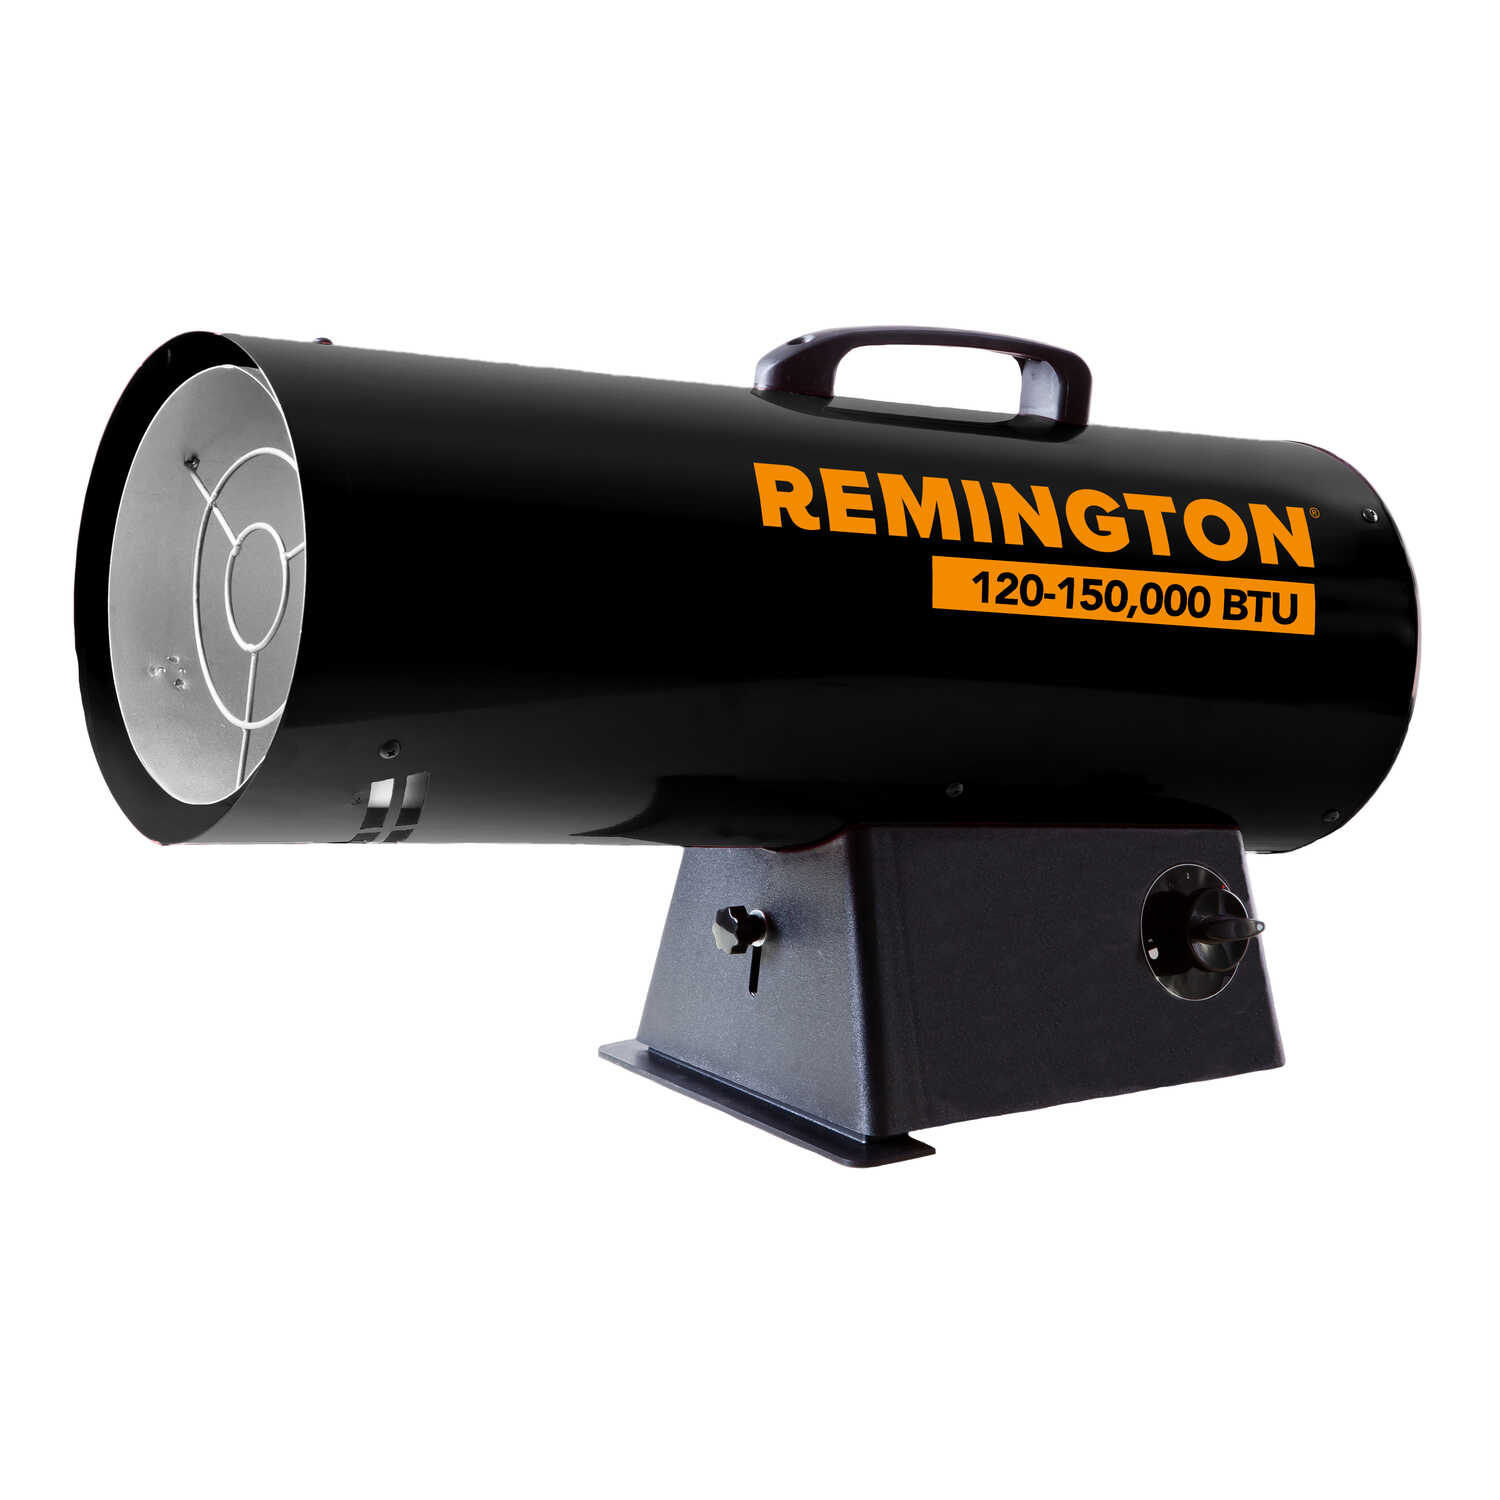 Remington 3125 Sq Ft Propane Forced Air Heater Ace